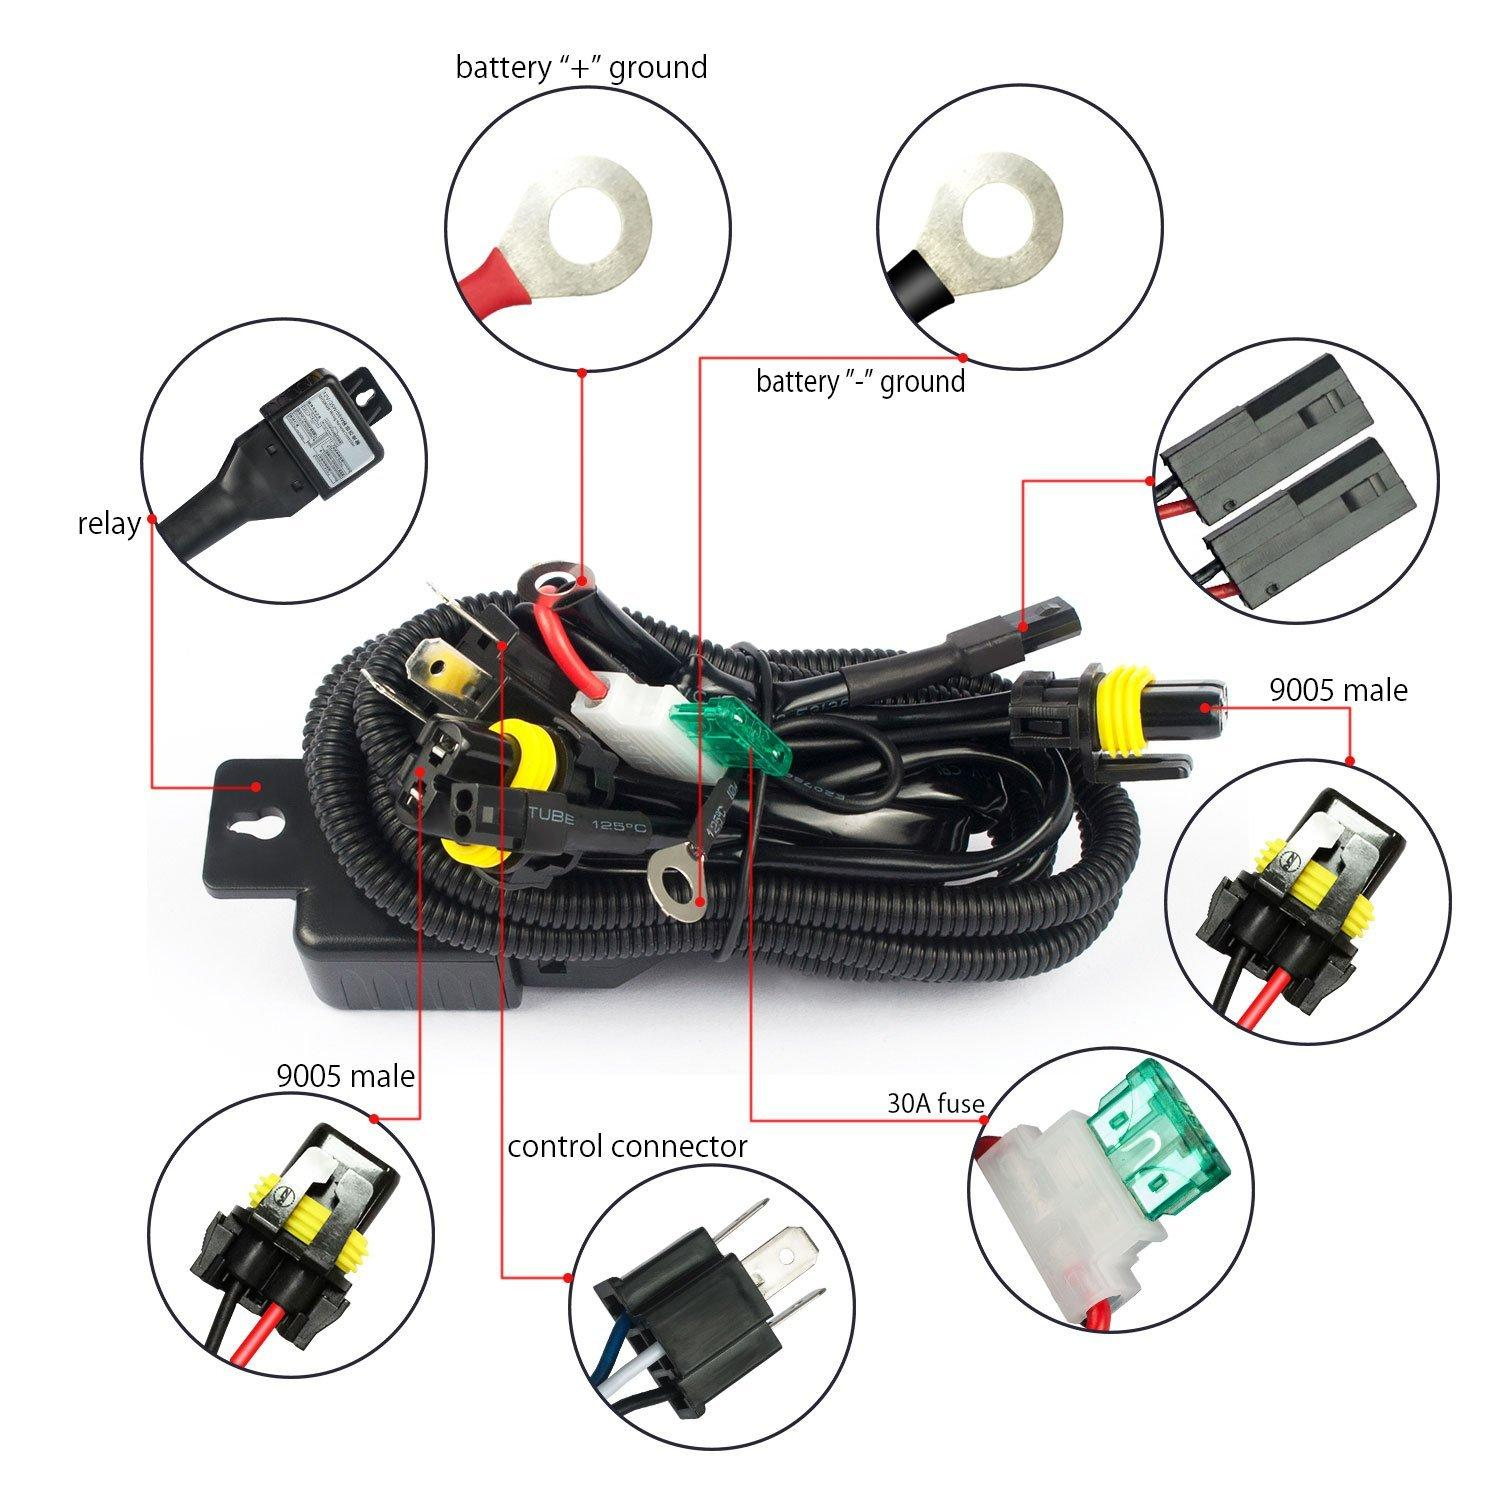 Remarkable H4 Hid Relay Harness Hid Xenon Kit H4 3 H13 3 9004 3 9007 3 Bixenon Wiring Digital Resources Ommitdefiancerspsorg